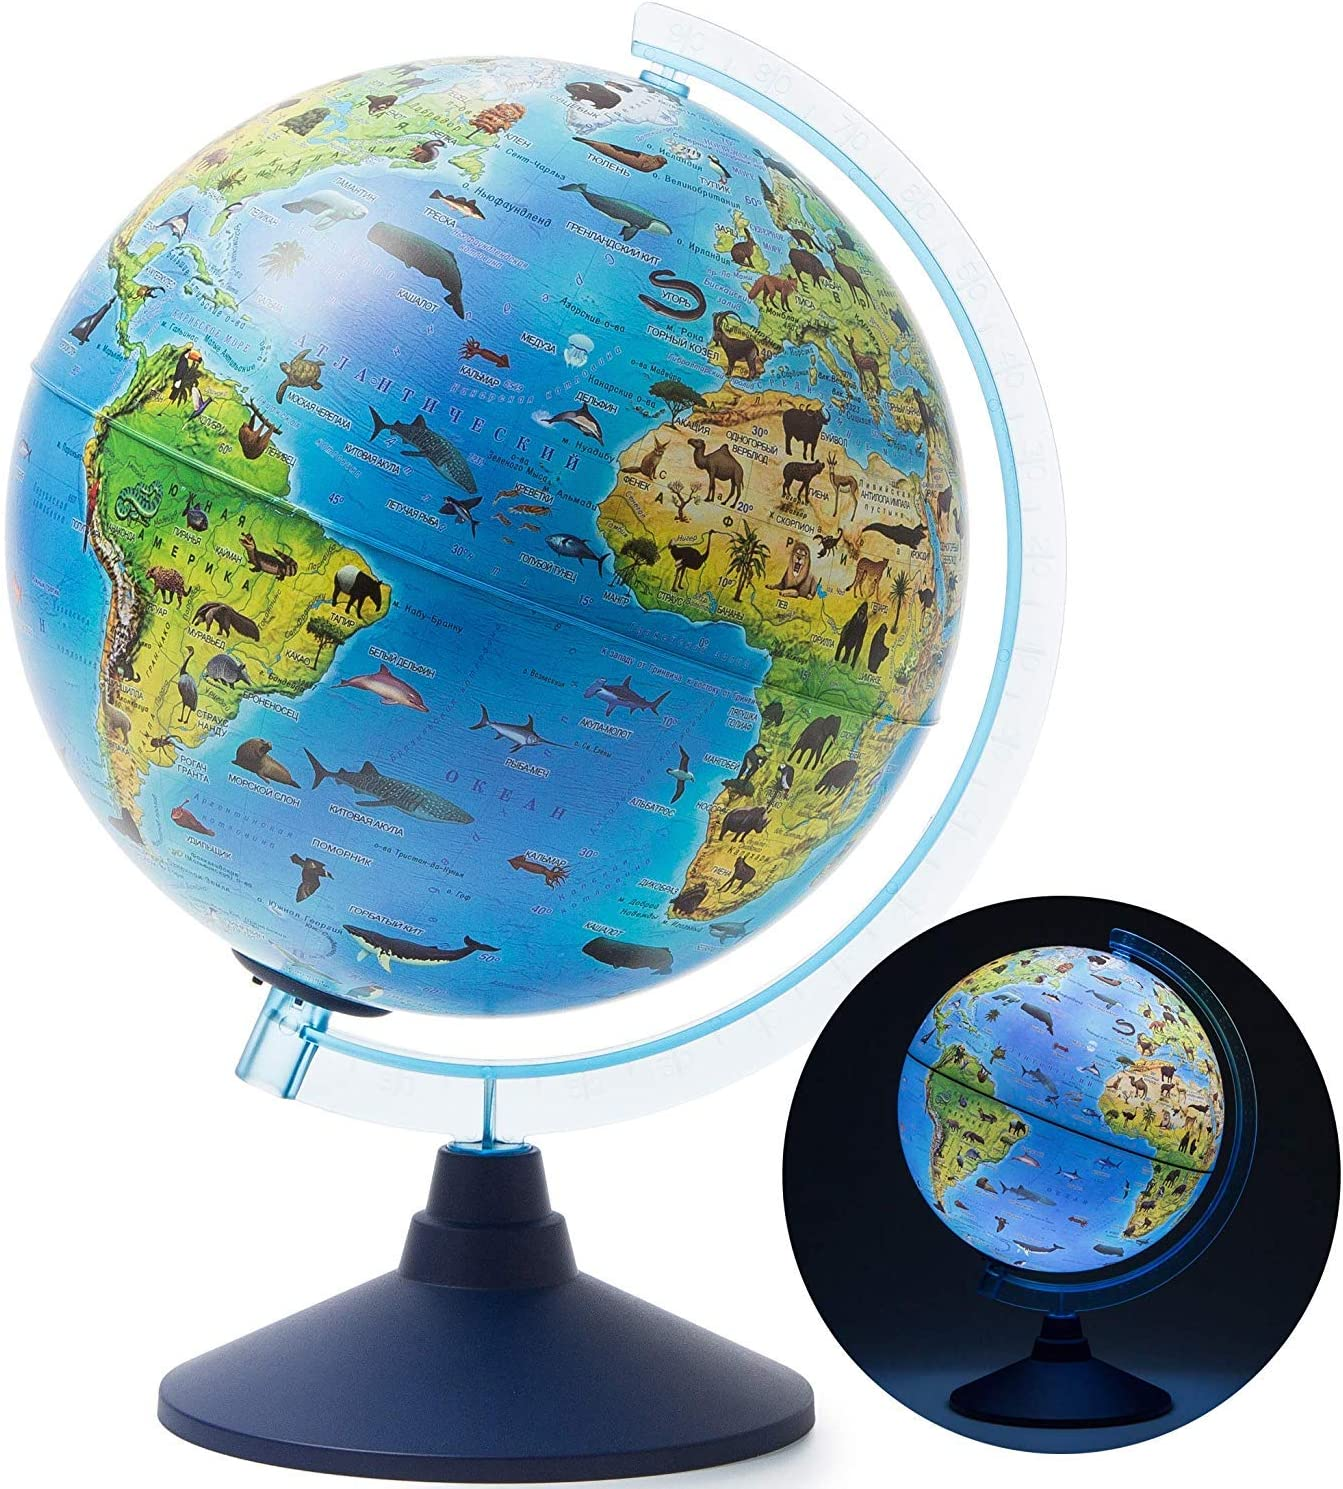 """Exerz 10"""" / 25CM Zoo-Geo Illuminated Globe Safari with Cable Free LED Light/ 2 in 1/ Day and Night - Physical and Zoo Dual Mapping, Illuminated Without Any Cable - Topography/Geography/Ridge (10"""")"""